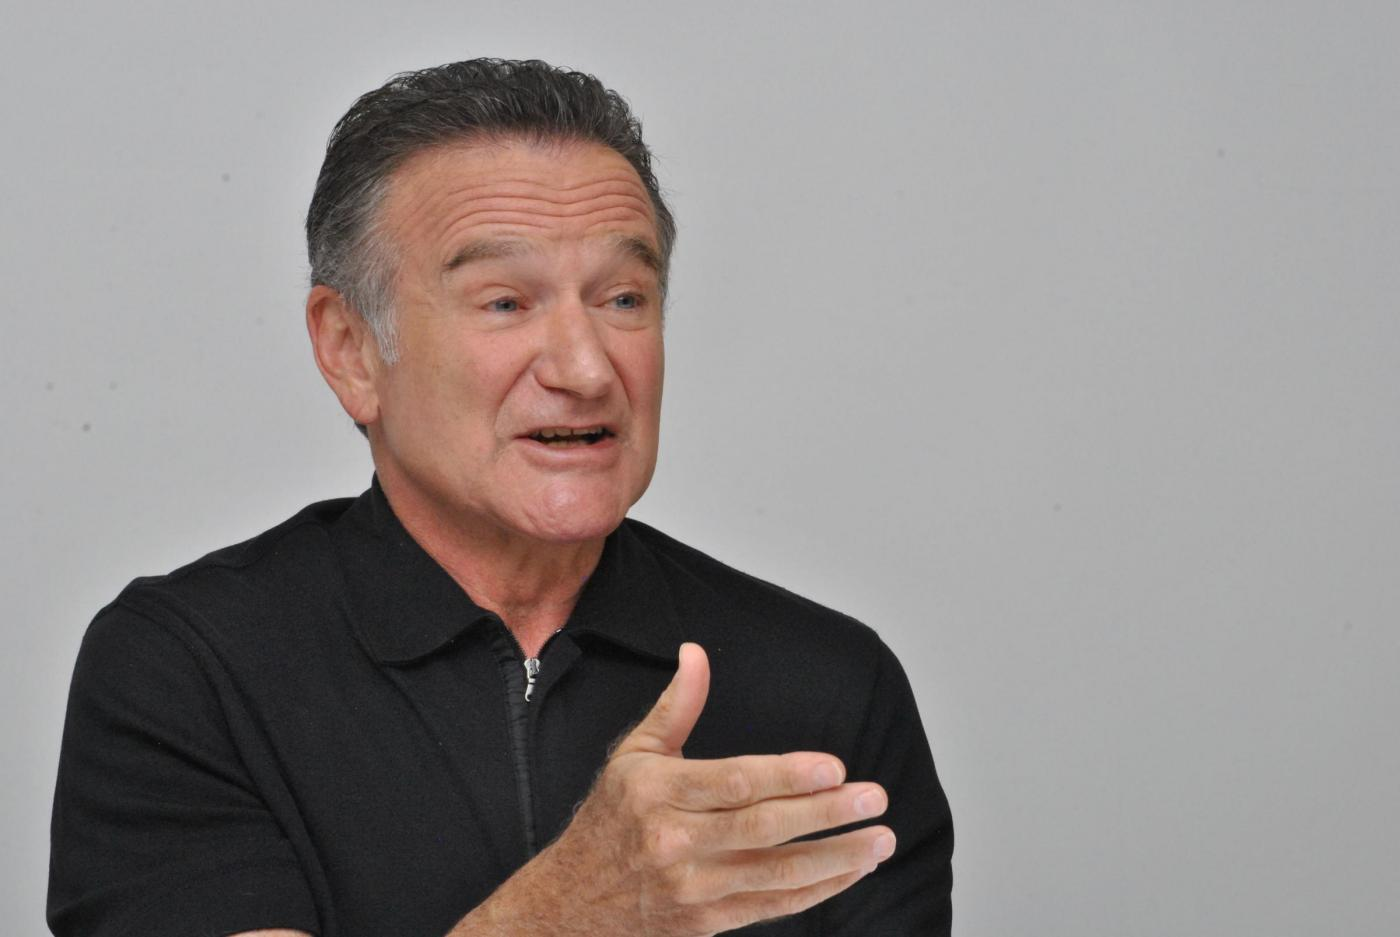 Robin Williams, biciclette all'asta per beneficenza